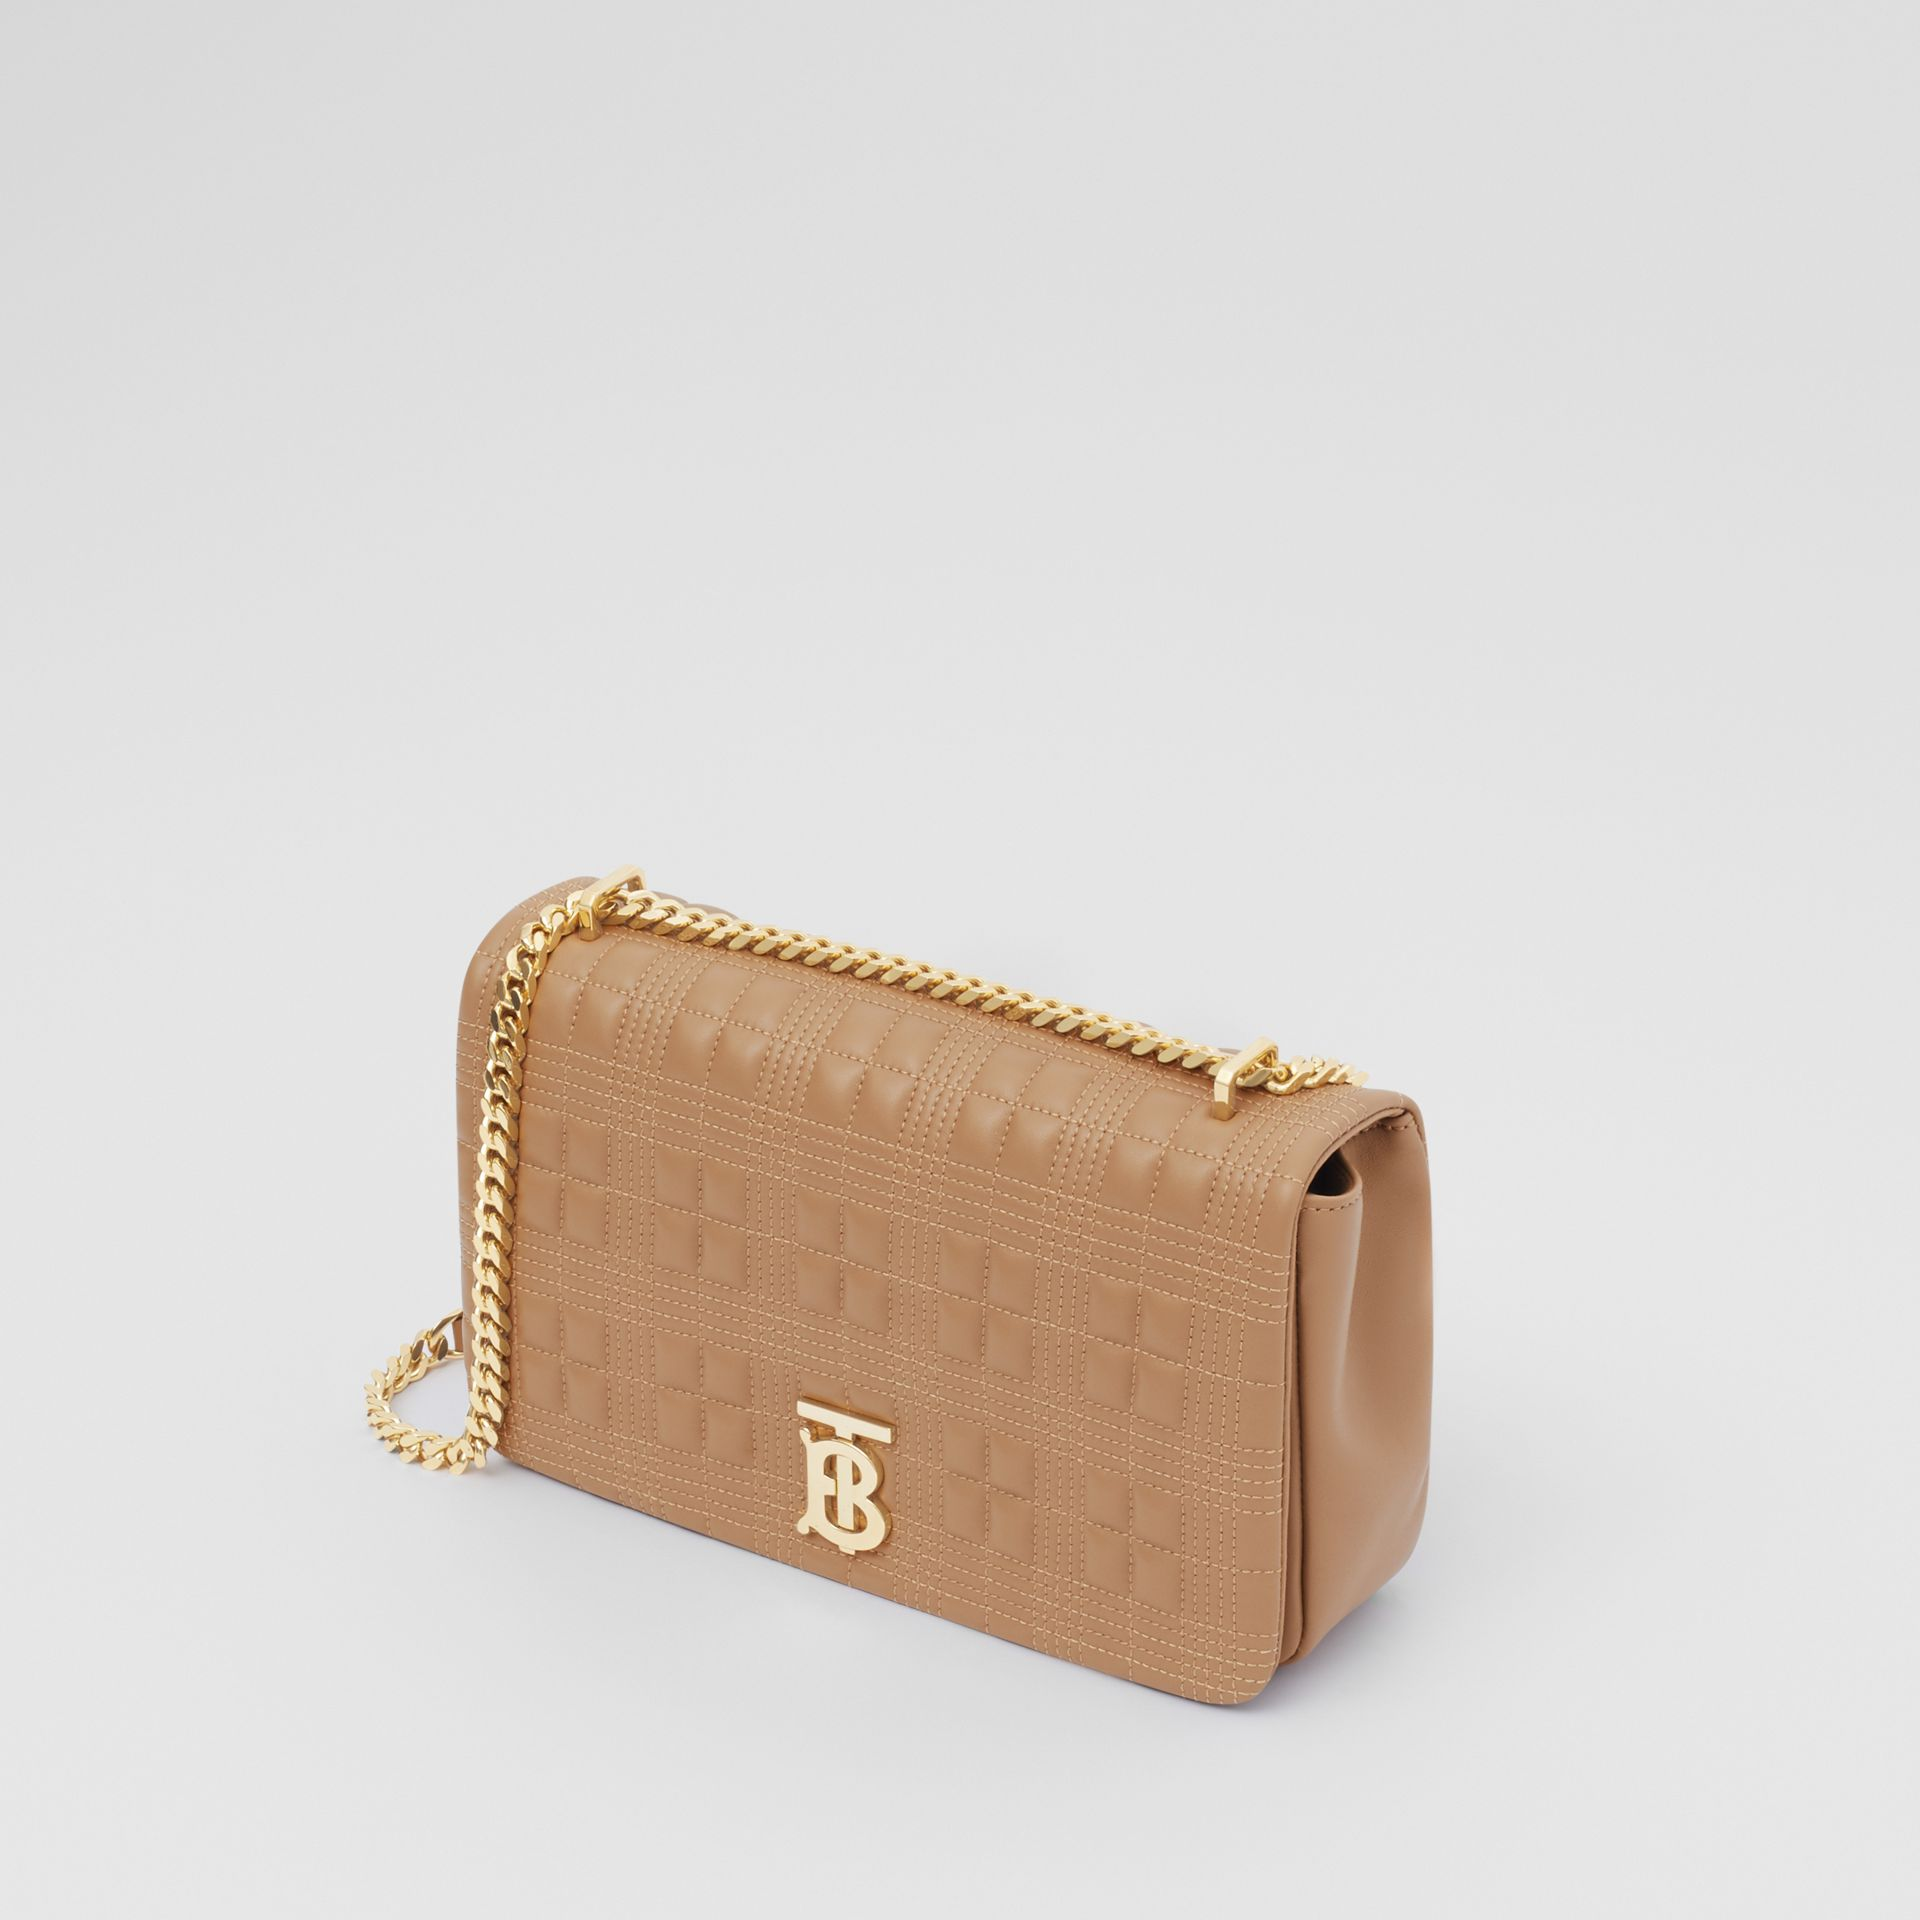 Medium Quilted Lambskin Lola Bag in Camel - Women | Burberry United Kingdom - gallery image 5